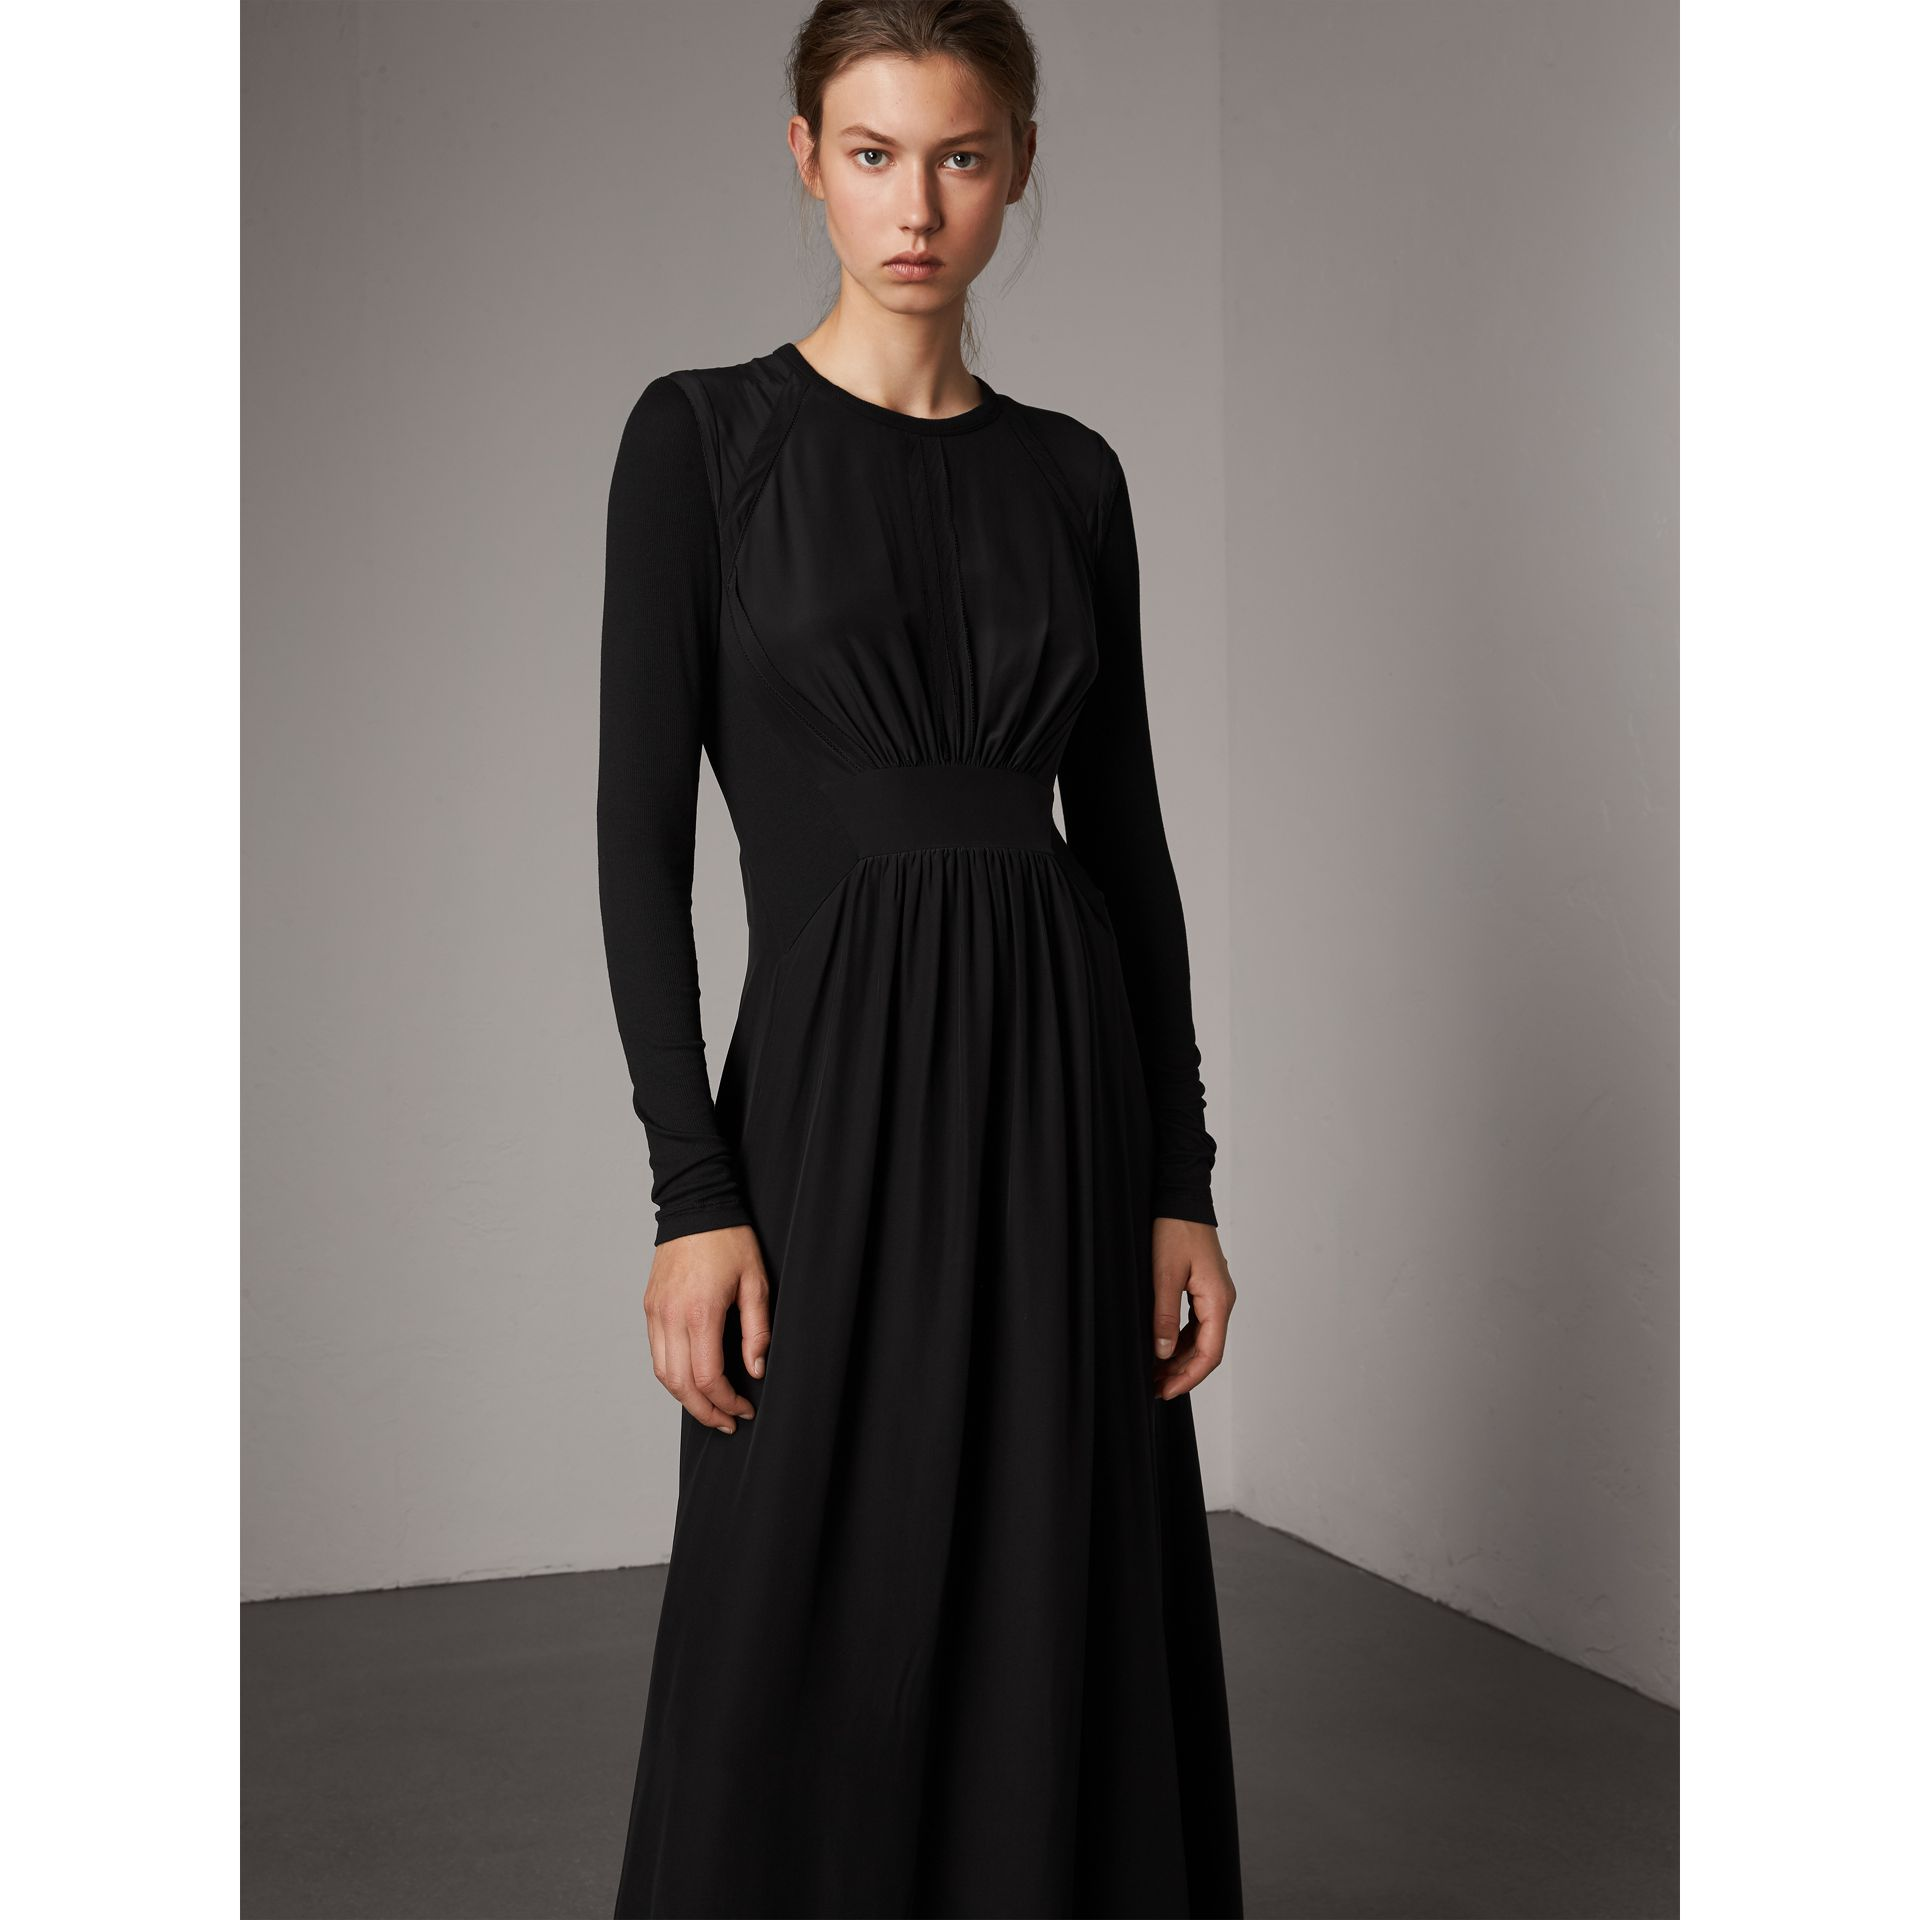 Silk Floor-length Gathered Dress in Black - Women | Burberry Australia - gallery image 5